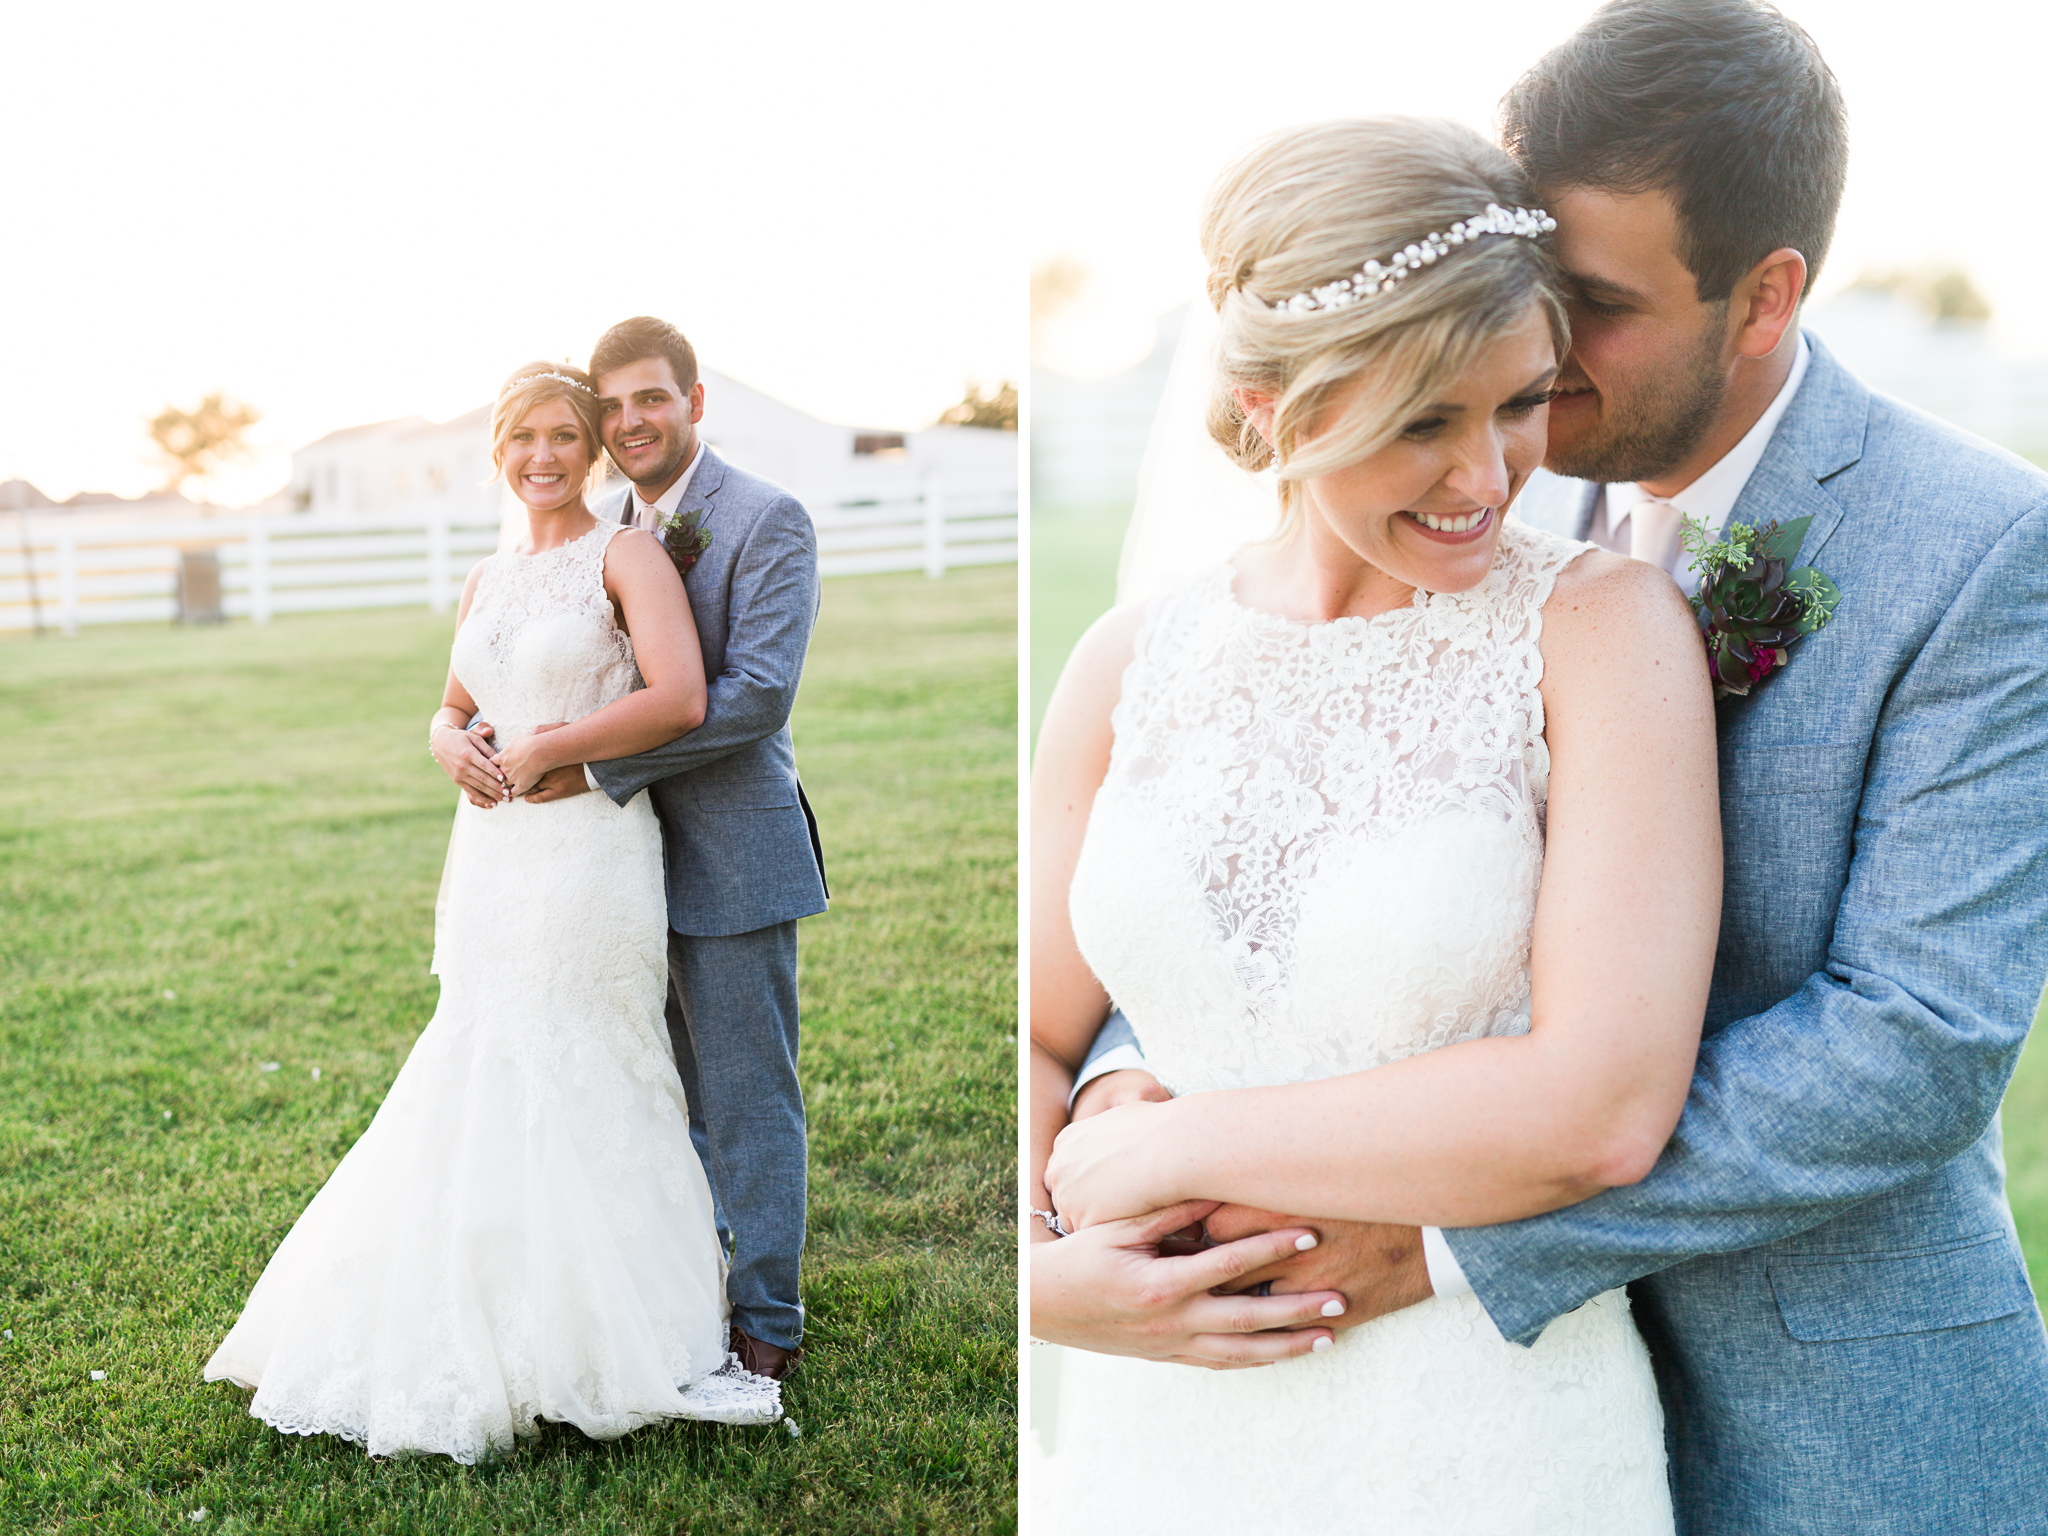 oklahoma wedding photographer norman wedding photographer the manor at coffee creek wedding okc wedding photographer4.jpg